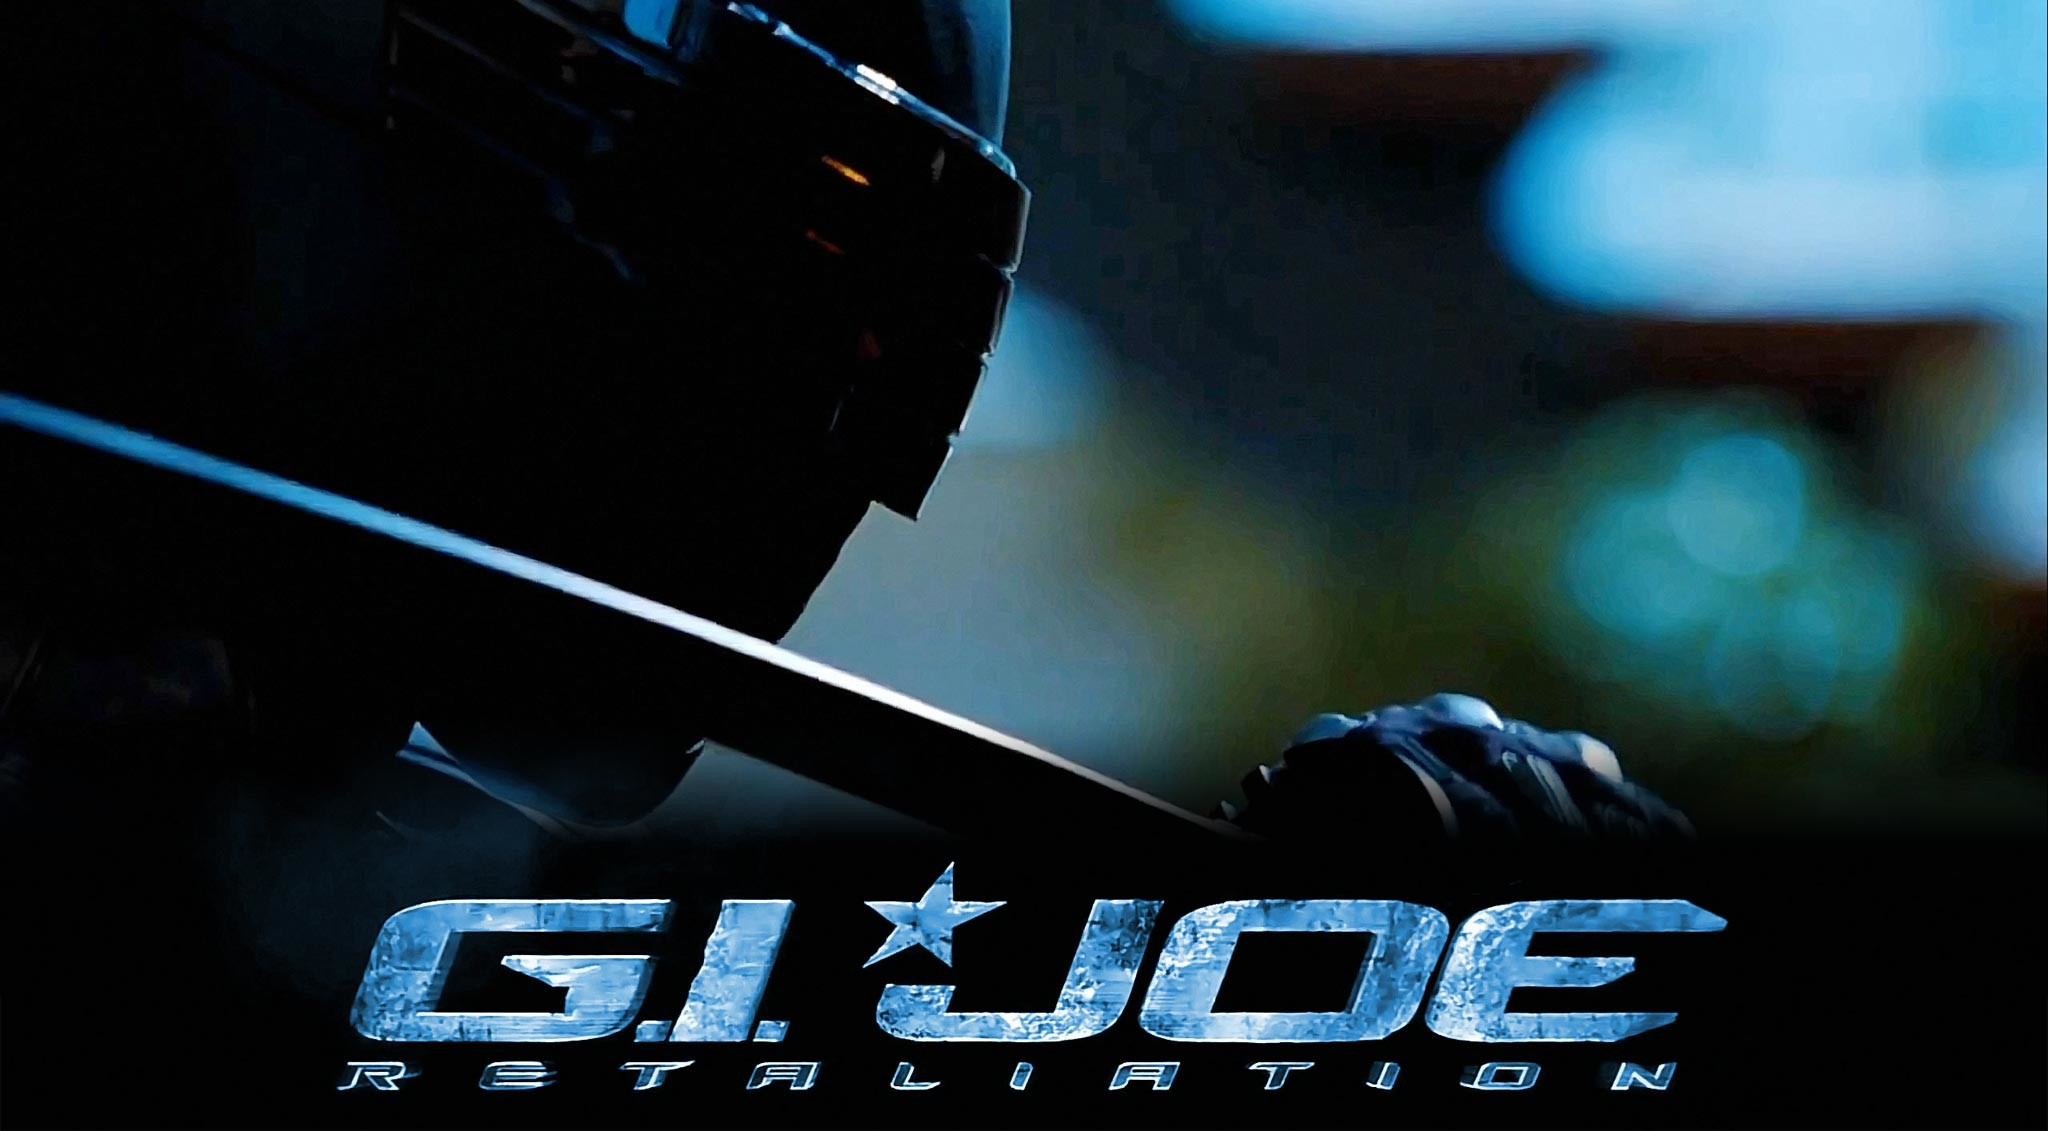 2048x1131 Gi Joe Wallpapers HD wallpapers - Gi Joe Wallpapers